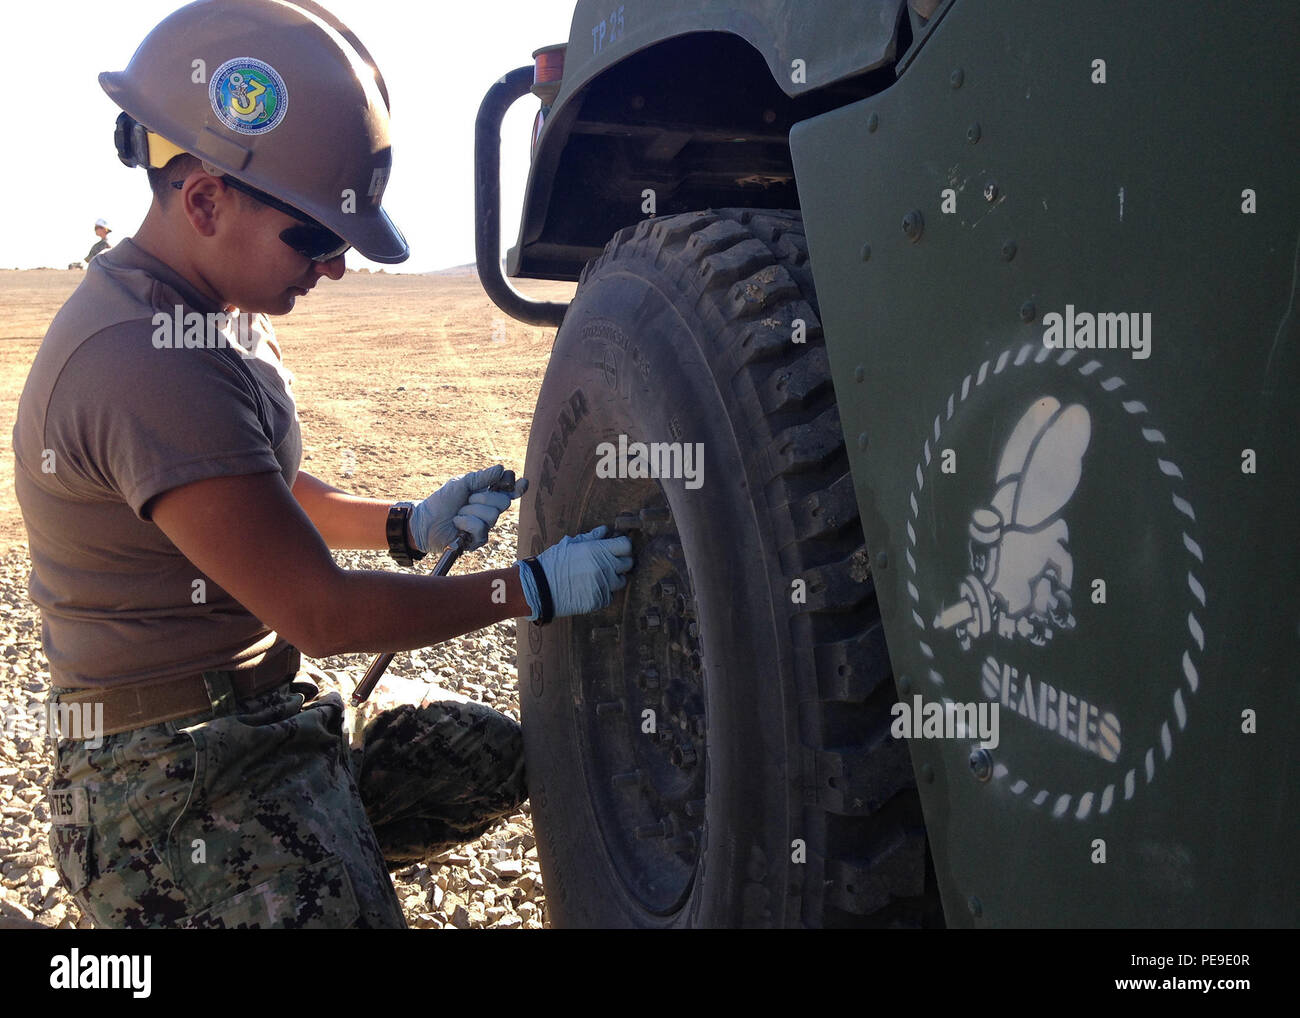 151108-N-SL238-945 SAN CLEMENTE ISLAND, Calif. (Nov. 8, 2015) Equipment Operator Constructionman Monica Cervantes, of Aransas Pass, Texas, assigned to Naval Mobile Construction Battalion (NMCB) 3, checks the tire pressure on a High Mobility Multipurpose Wheeled Vehicle (HMMWV) at the San Clemente Island Seabee Quarry. NMCB 3 is conducting maintenance on all equipment to ensures that operations continue to be conducted safely. (U.S. Navy photo by Engineering Aide 3rd Class Joshua Goldstein/Released) - Stock Image